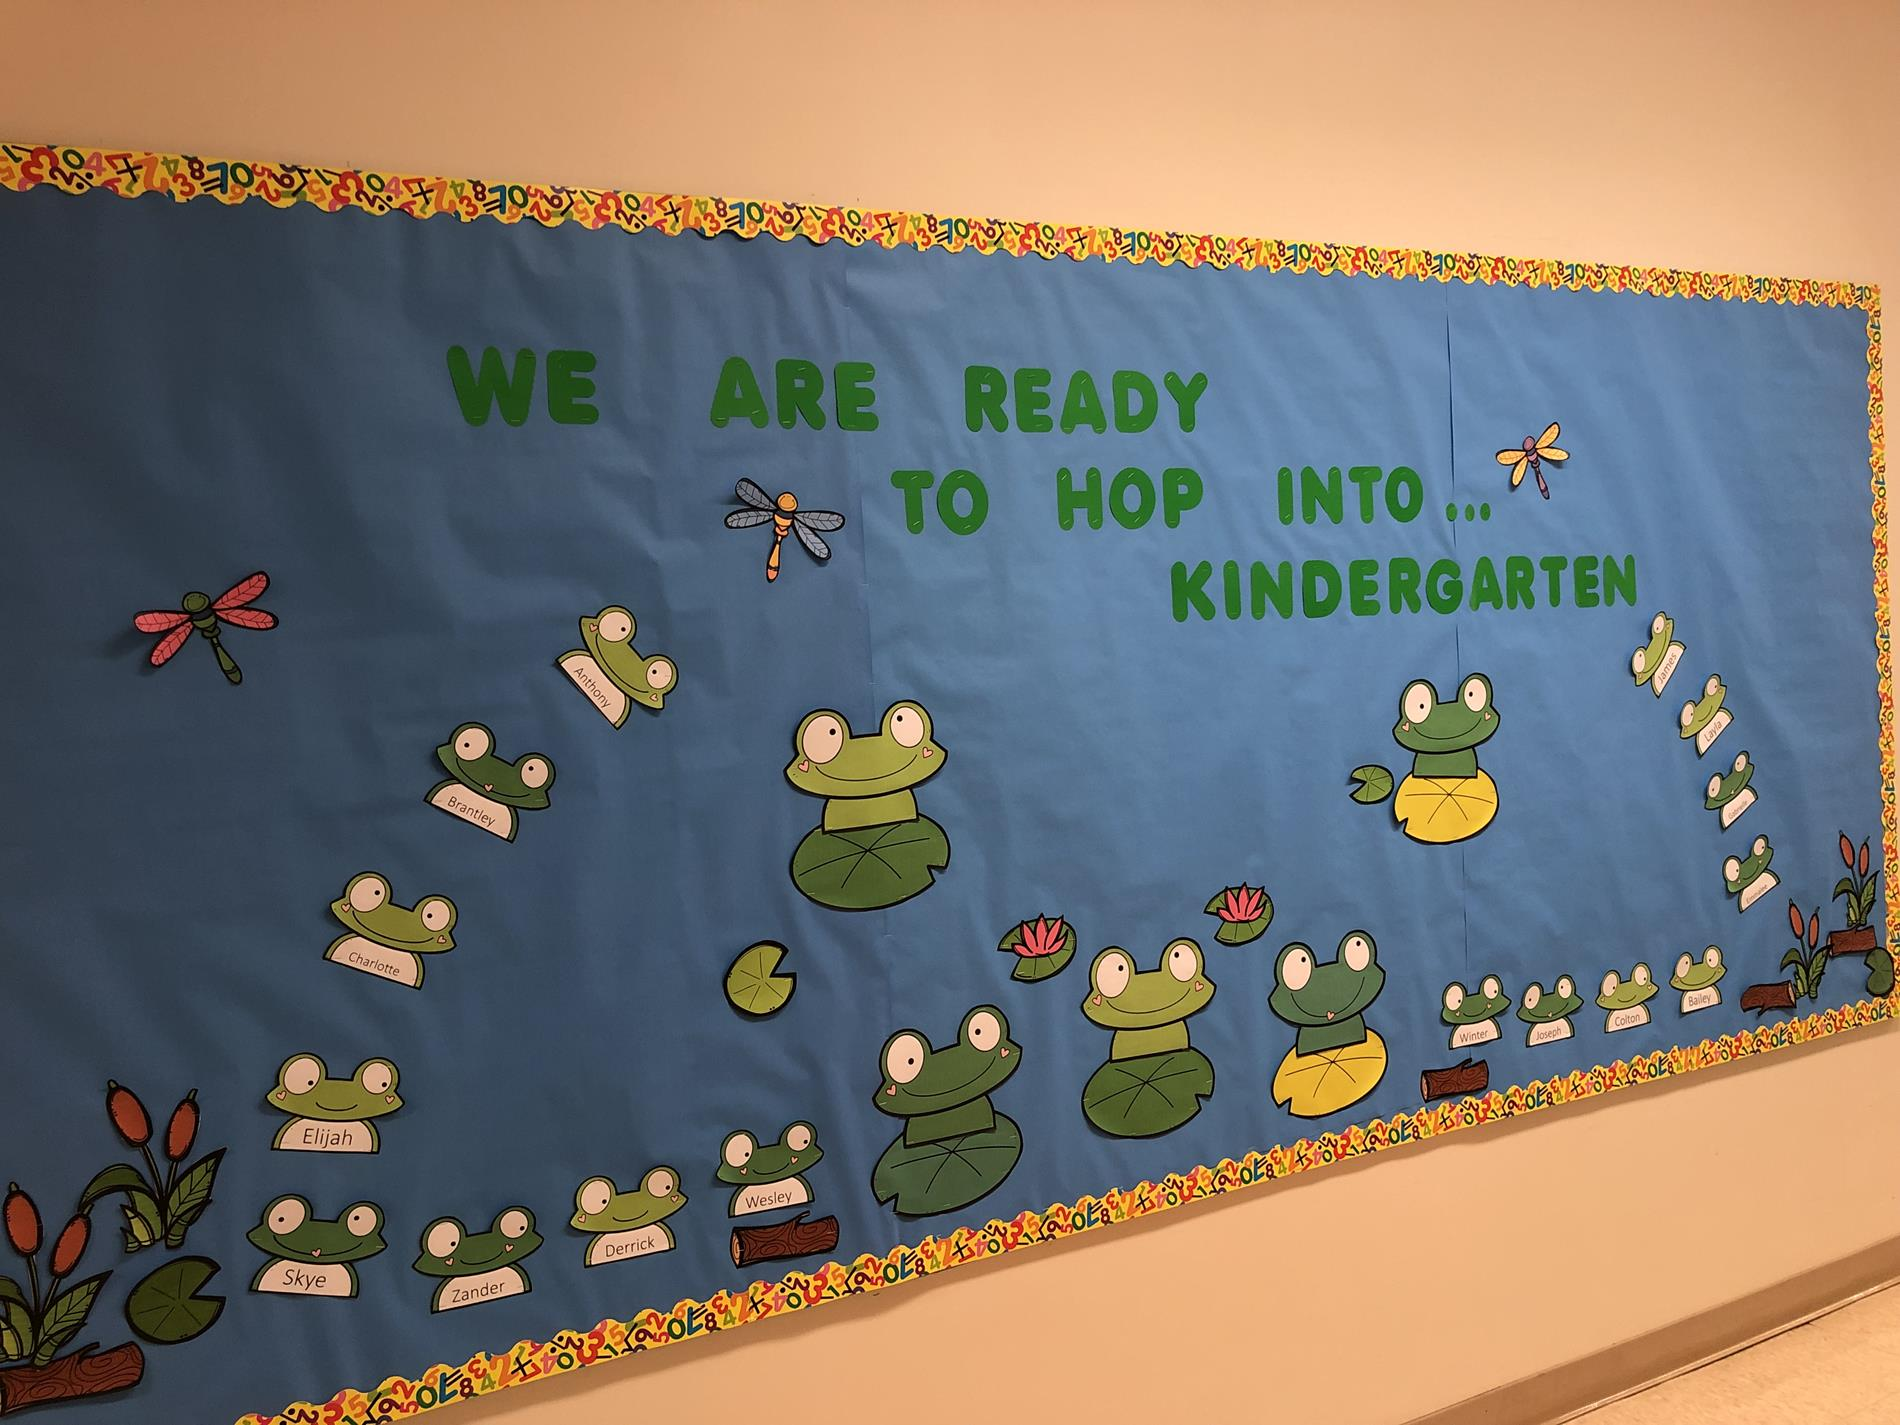 Hop into Kindergarten